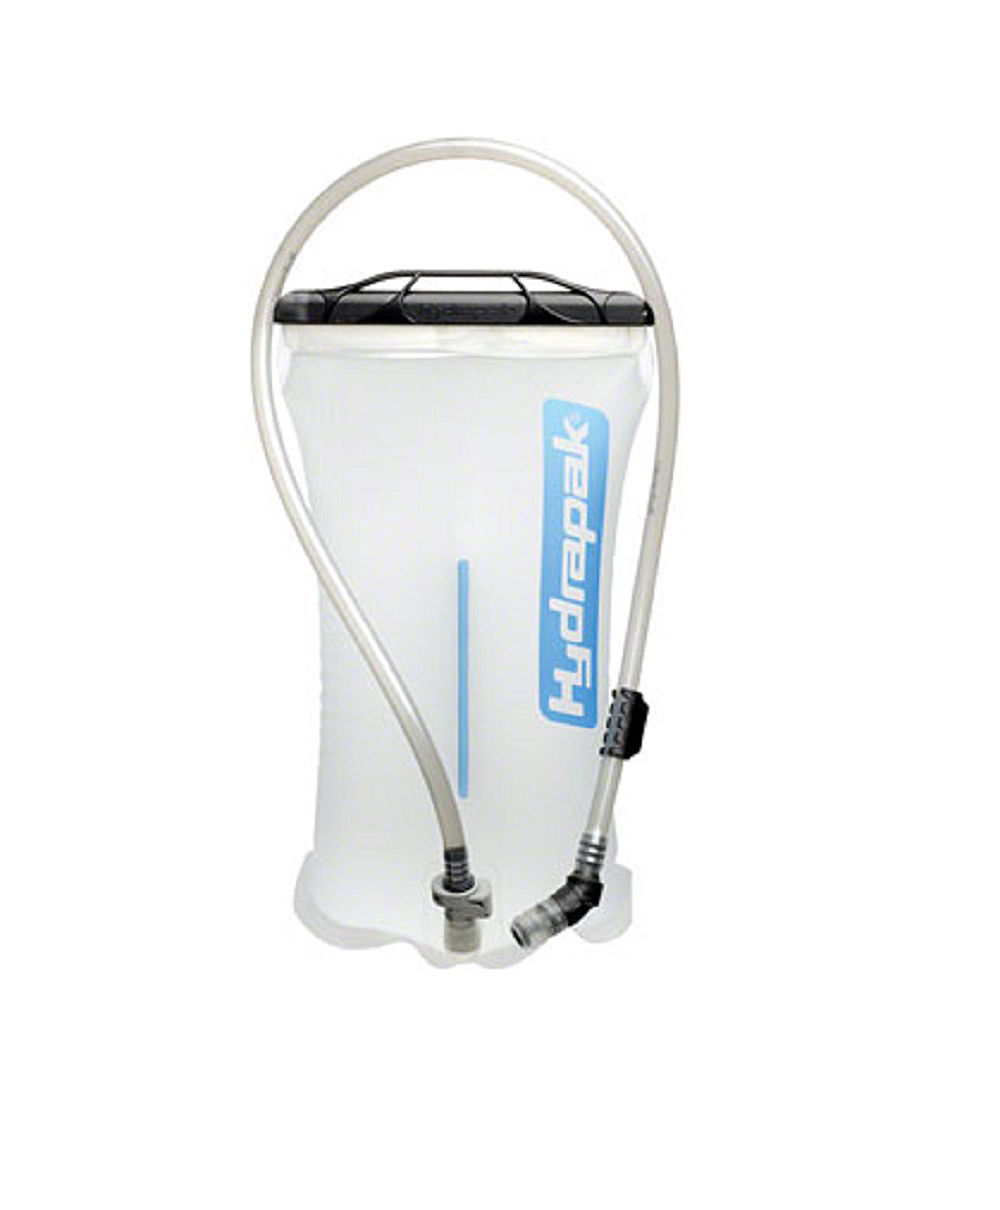 Fox Racing Hydrapak Reservoir Replacement Bladder 3 Liter